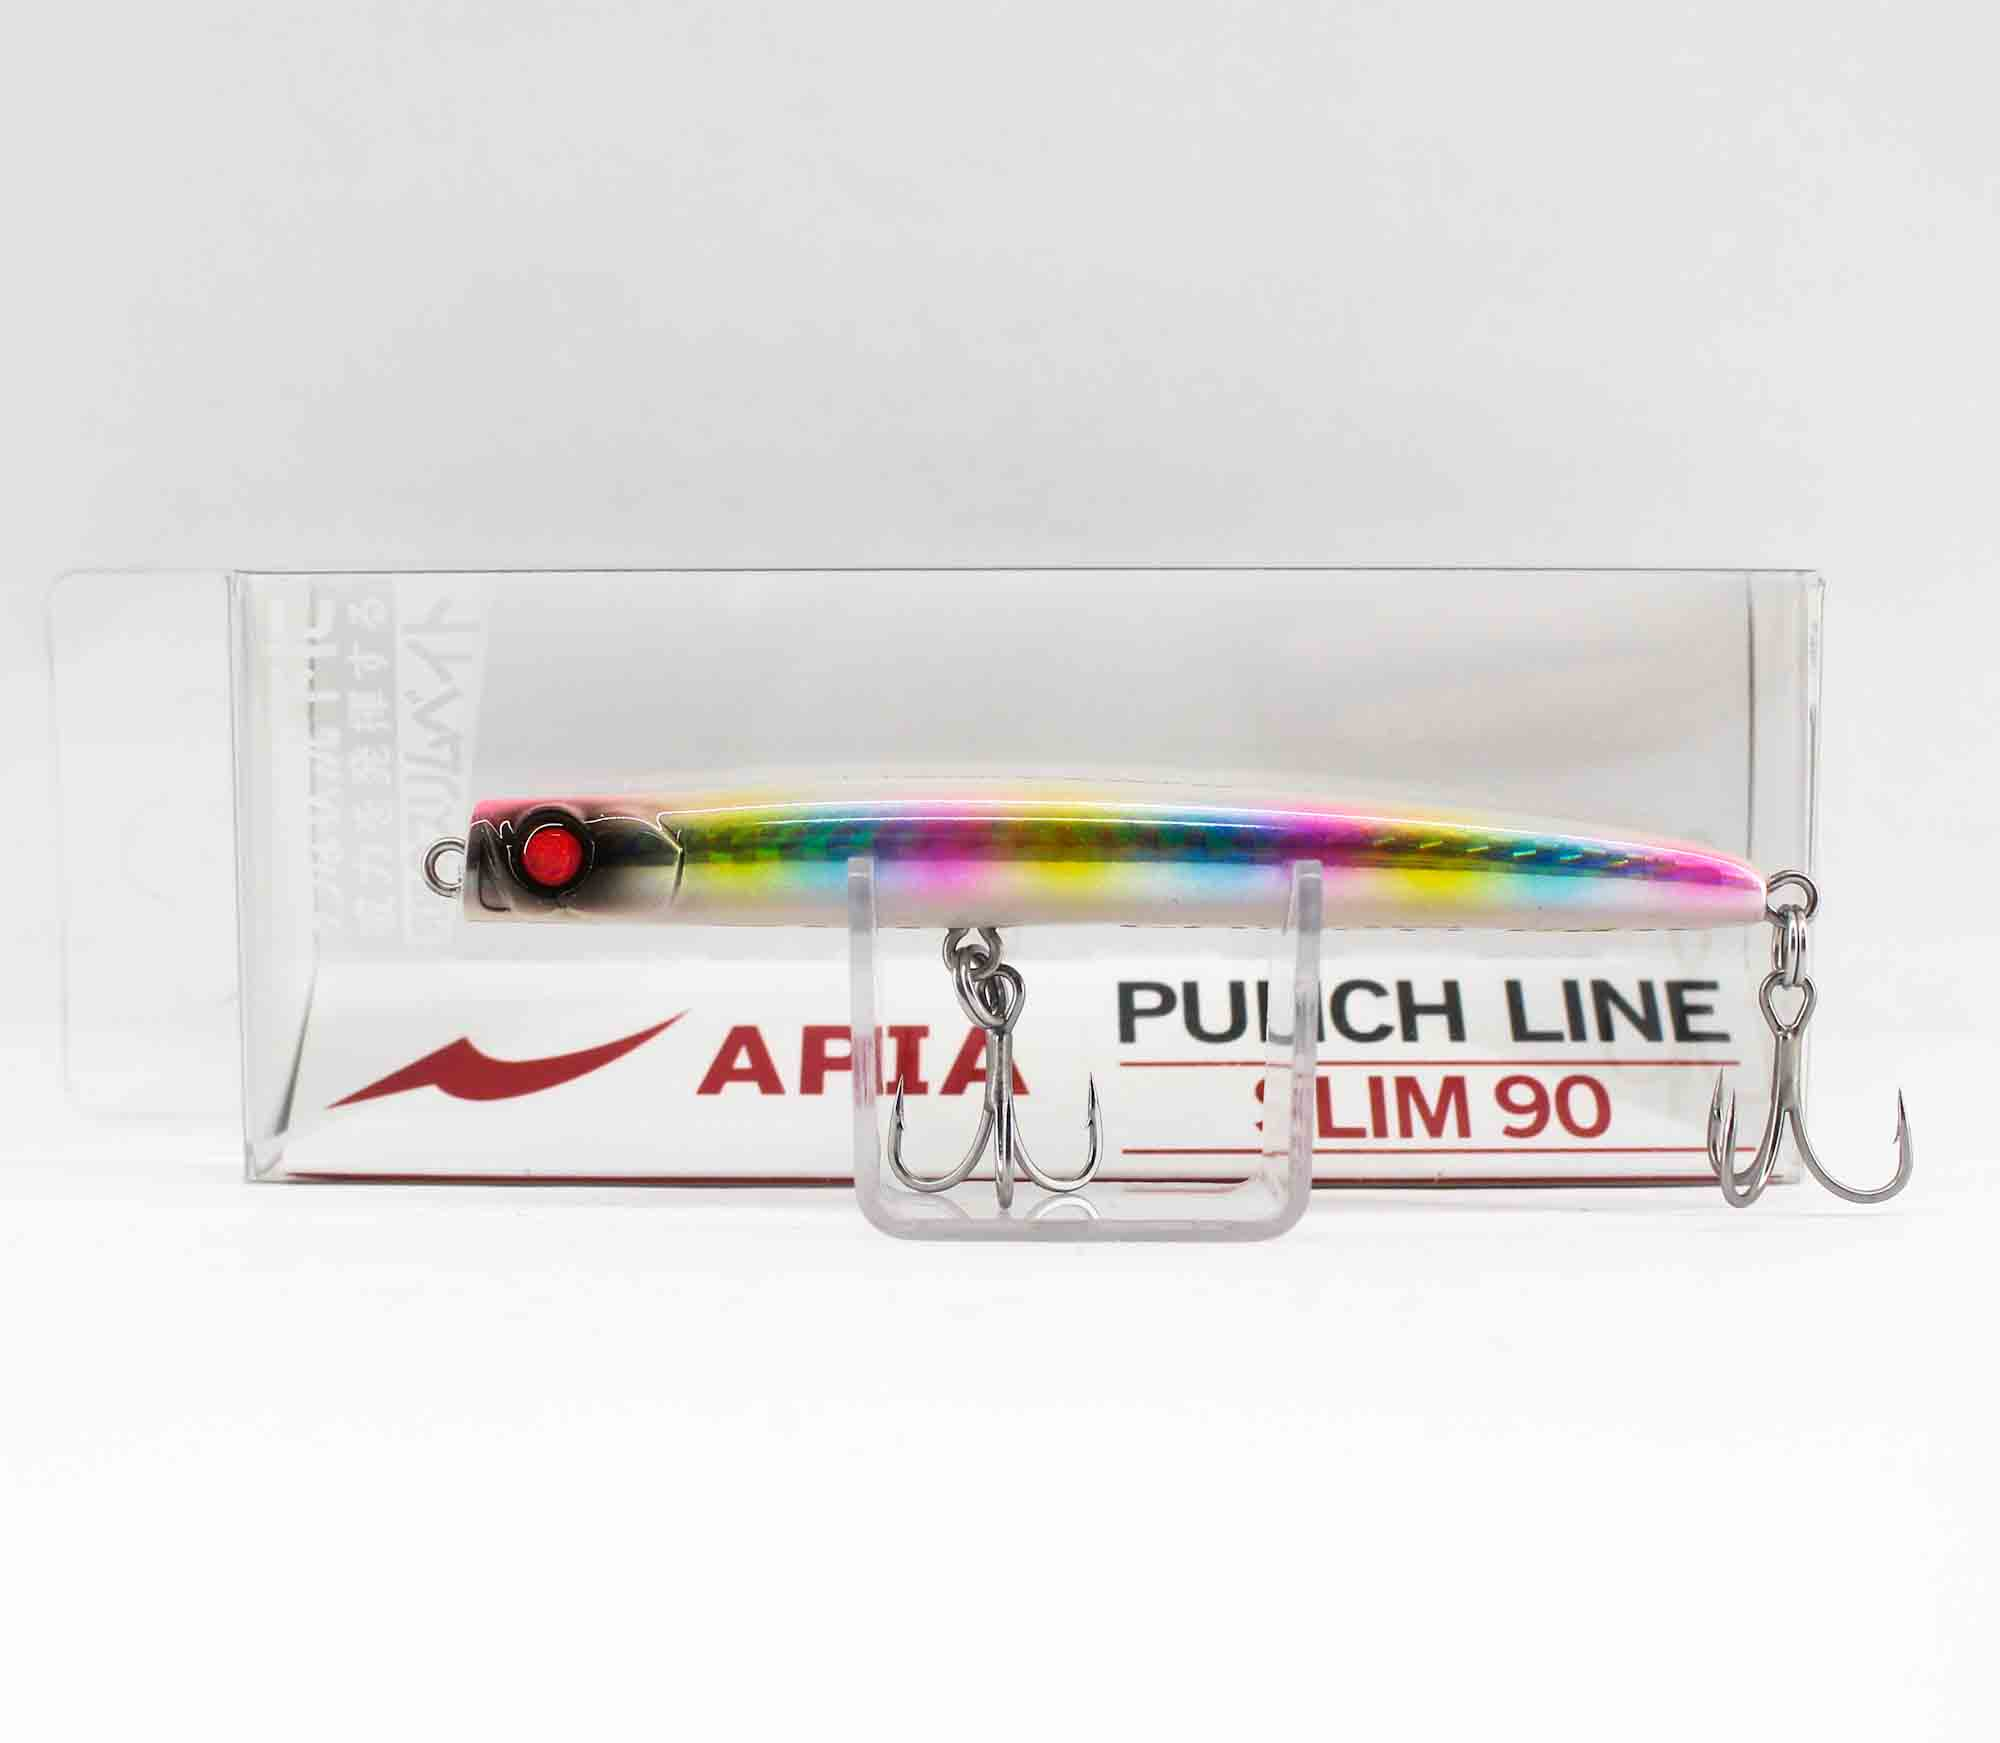 Apia Punch Line 90 Slim Sinking Pencil Lure 06 (6487)